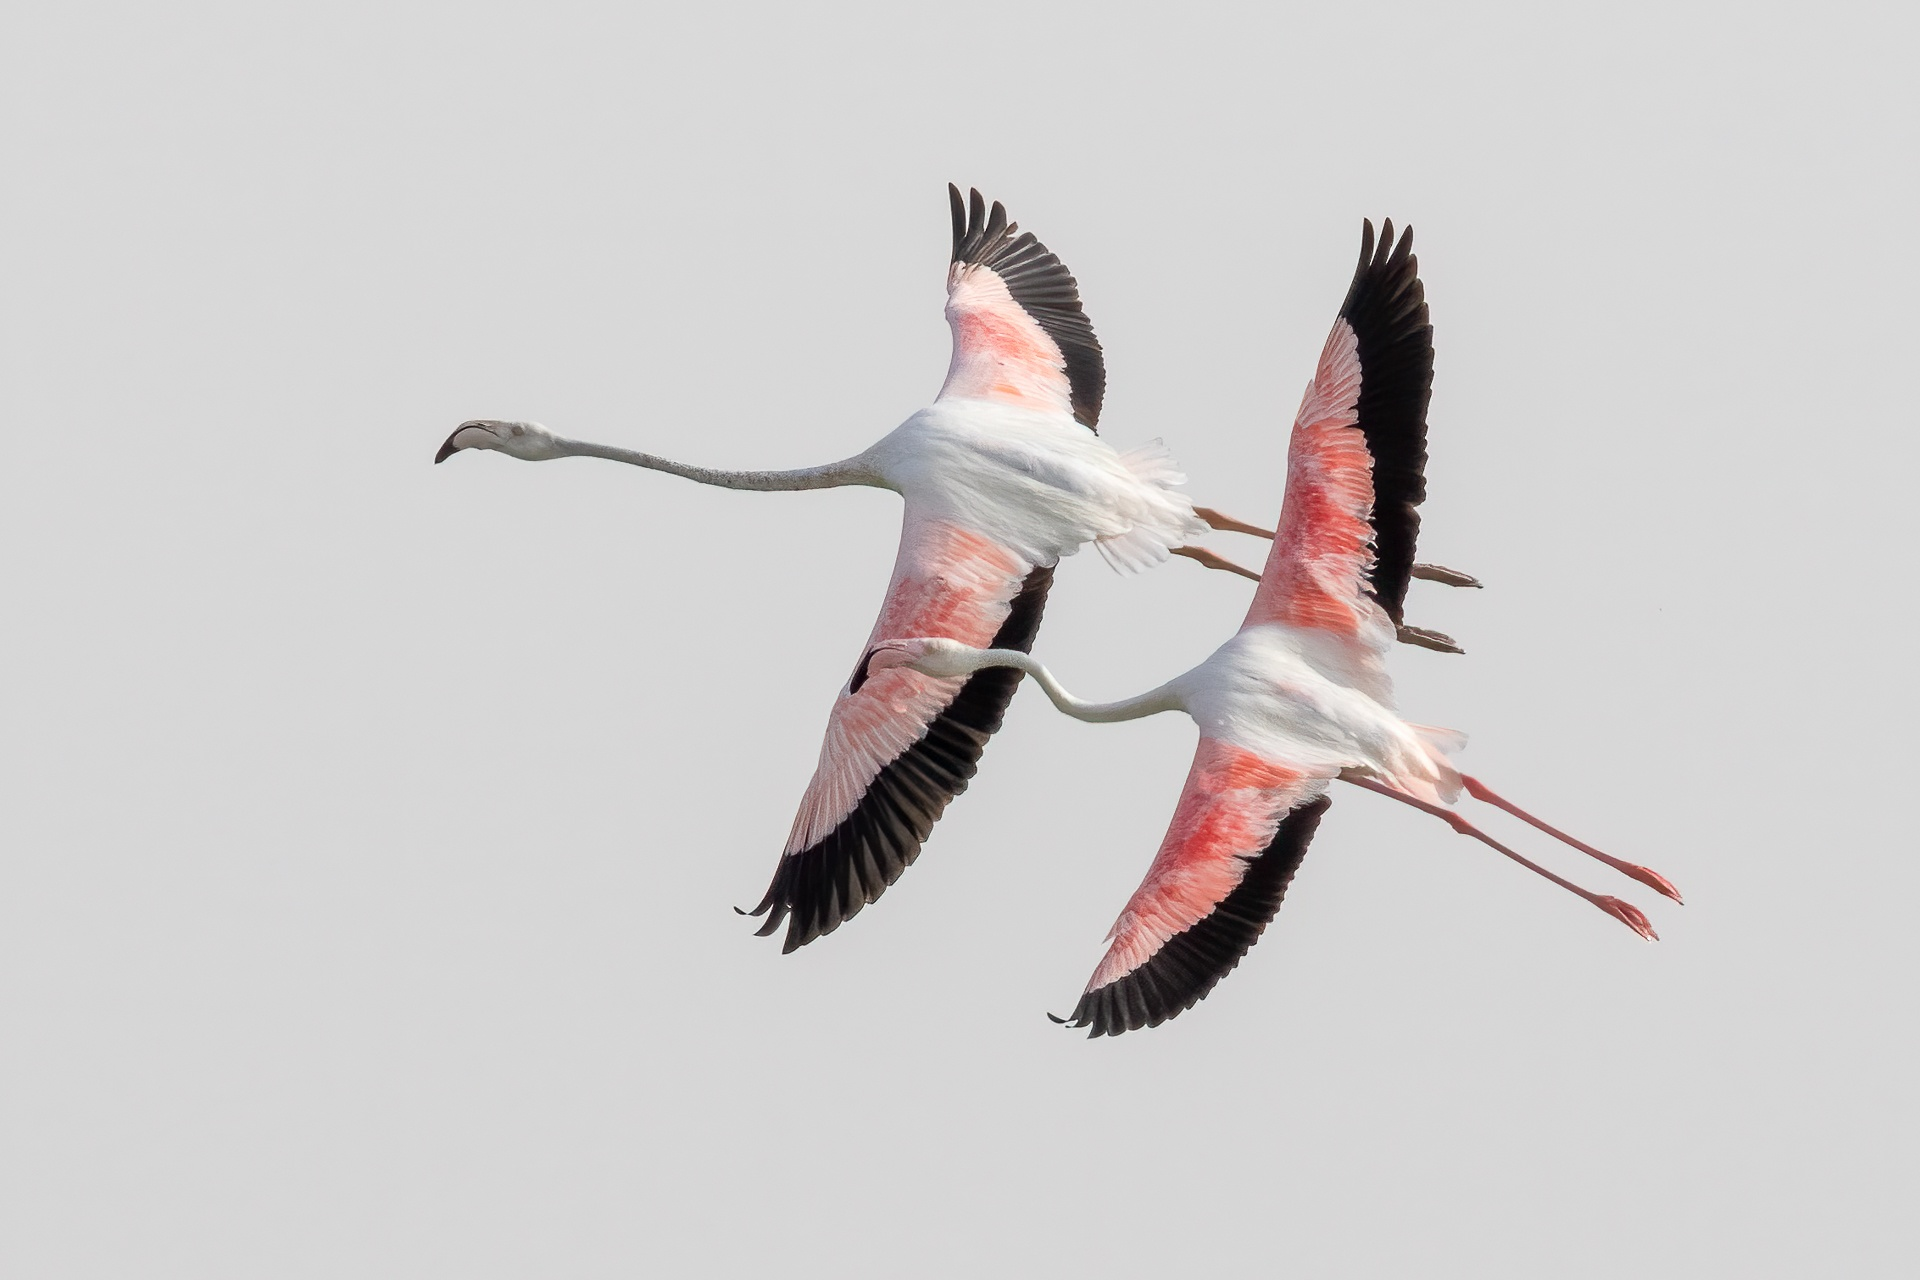 The gracefulness of flamingos in flight